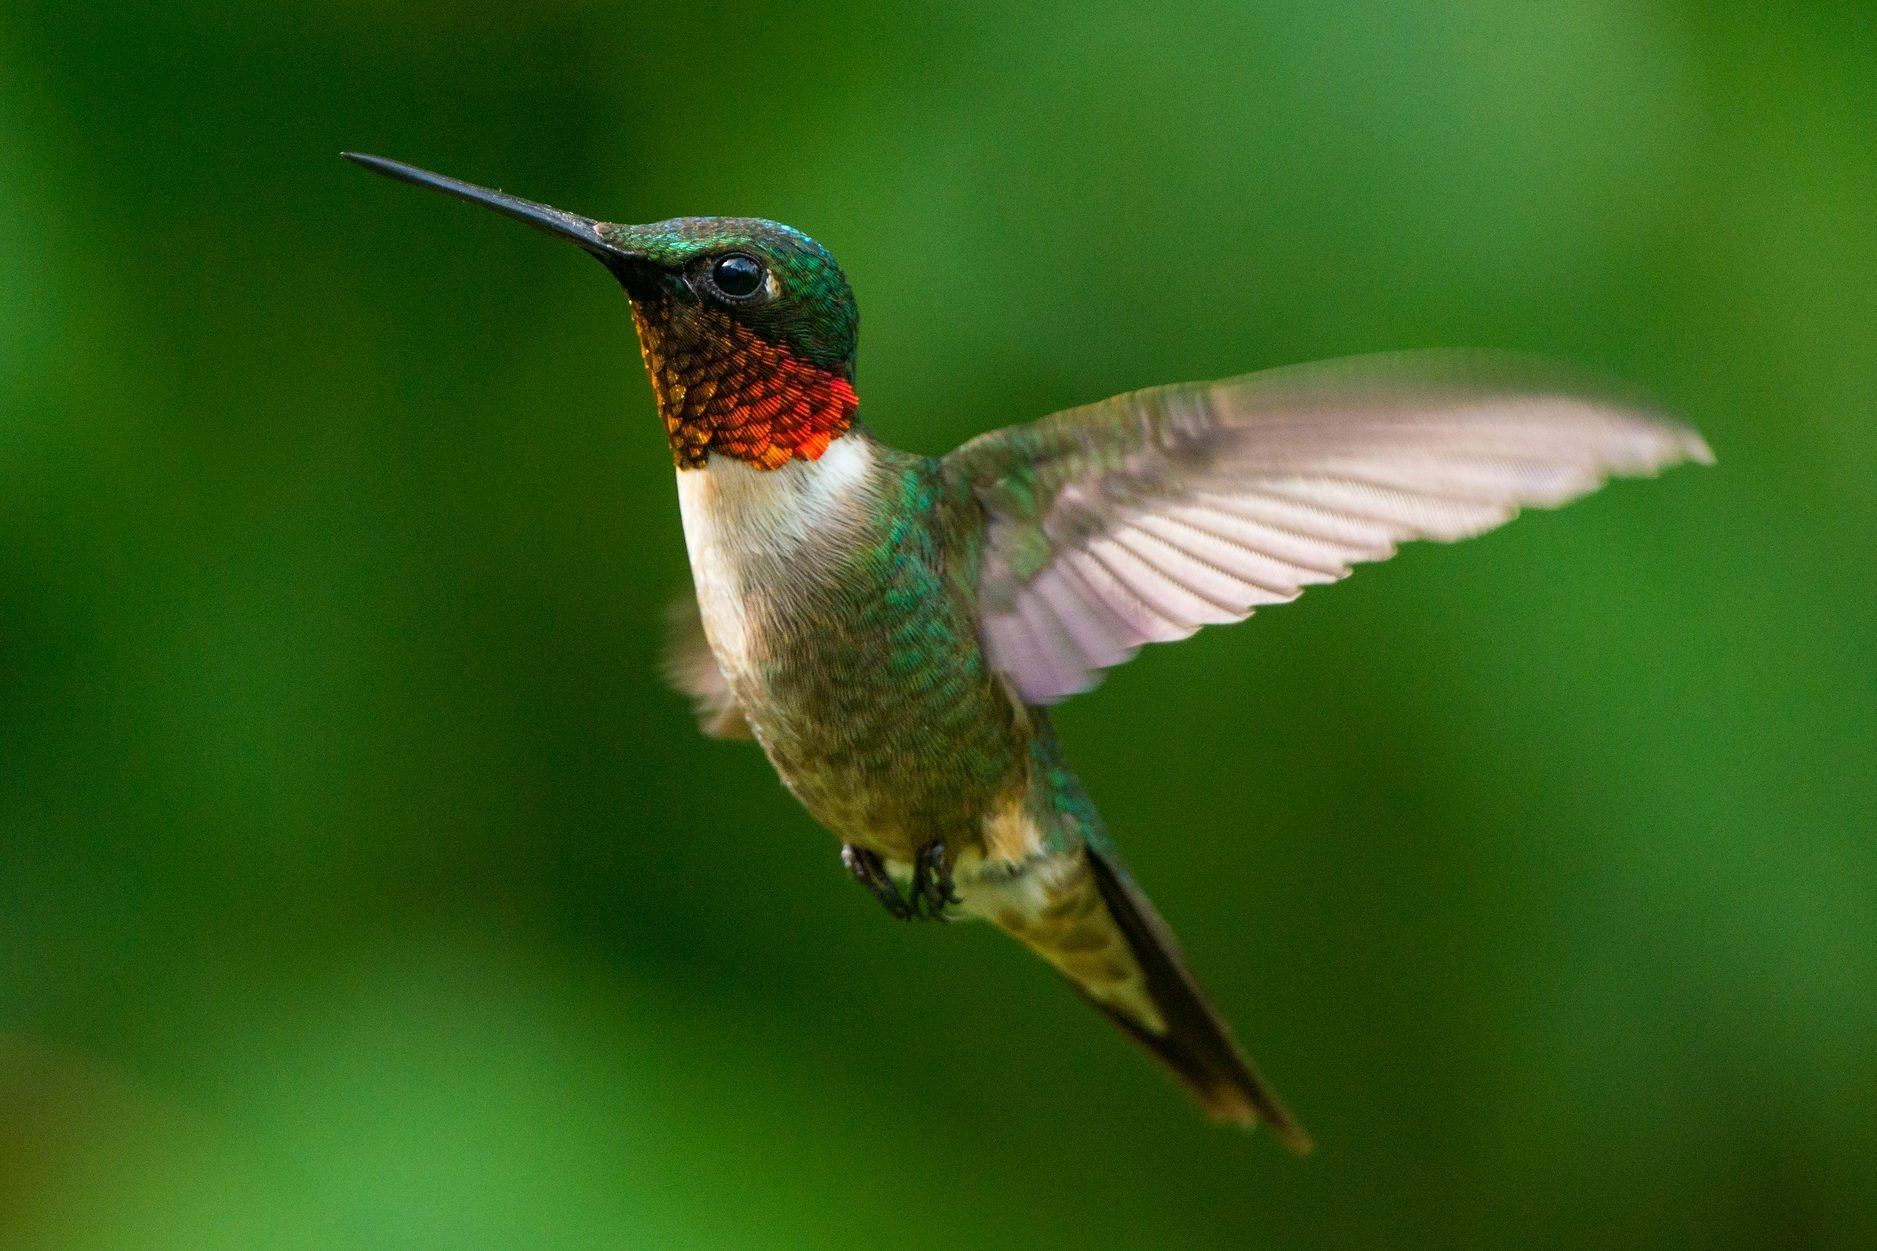 Male Ruby-throated Hummingbird wings fluttering